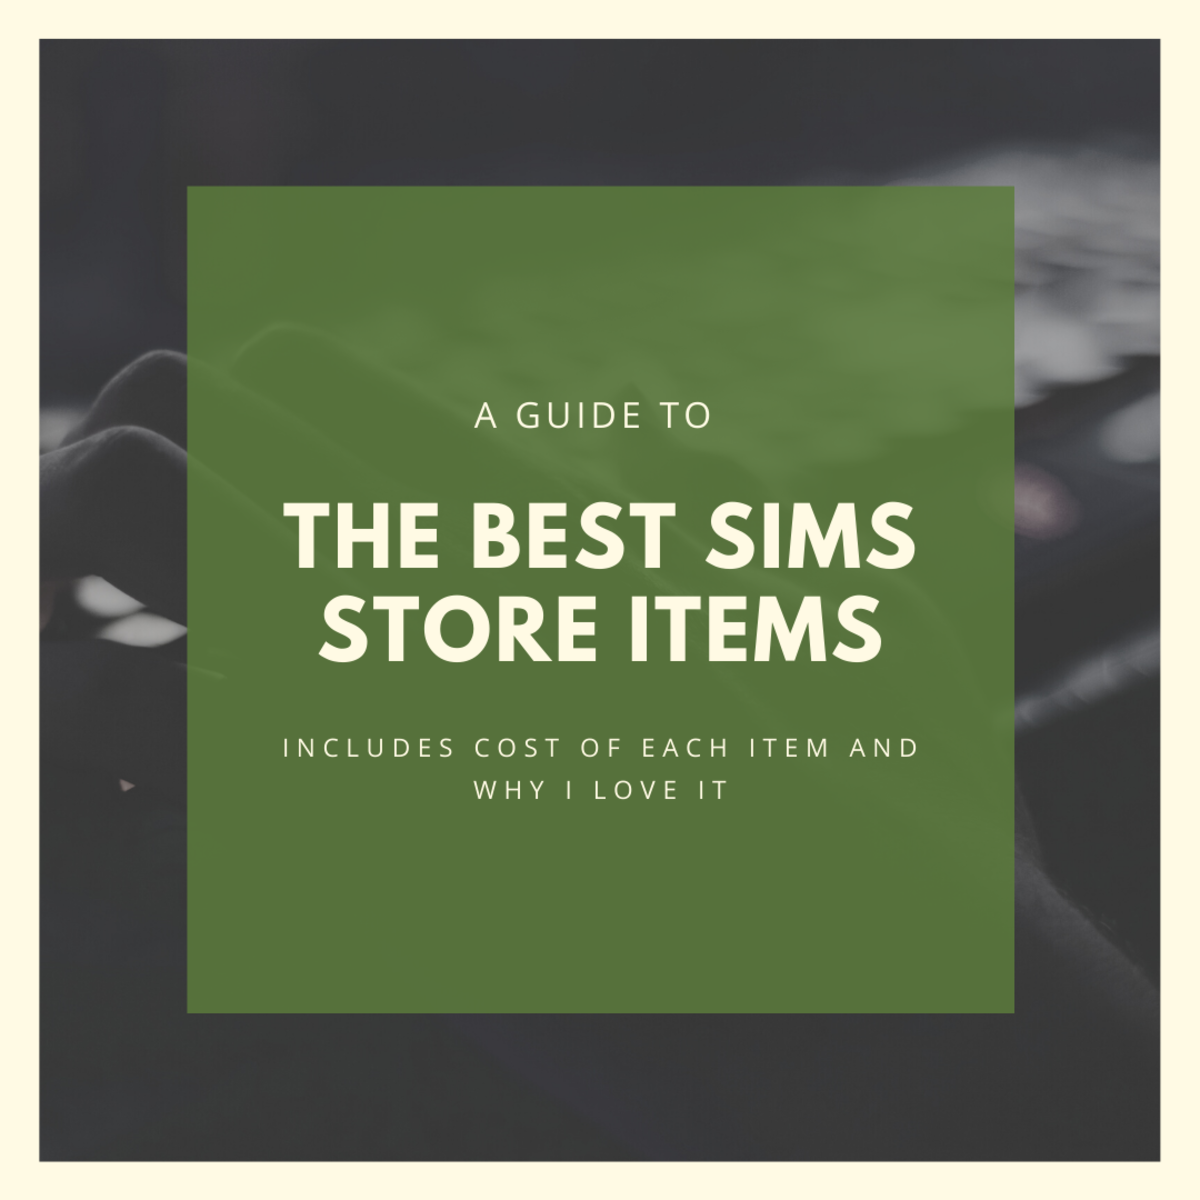 Not sure what to buy in the Sims store? Here's a look at 15 of the best available items for your purchase with SimPoints.